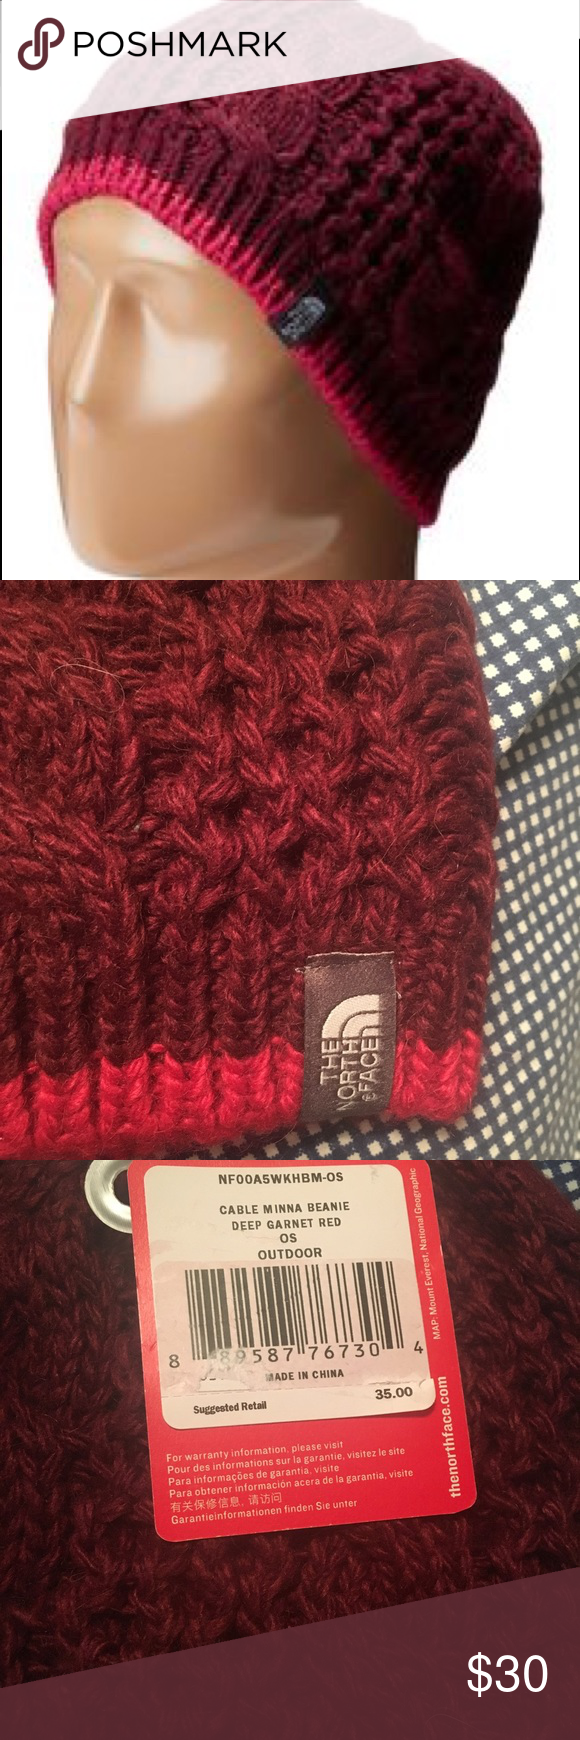 2aa4318e8e9 BRAND NEW NORTH FACE BEANIE Cable Minna Beanie ( deep garnet red ) North  Face Accessories Hats